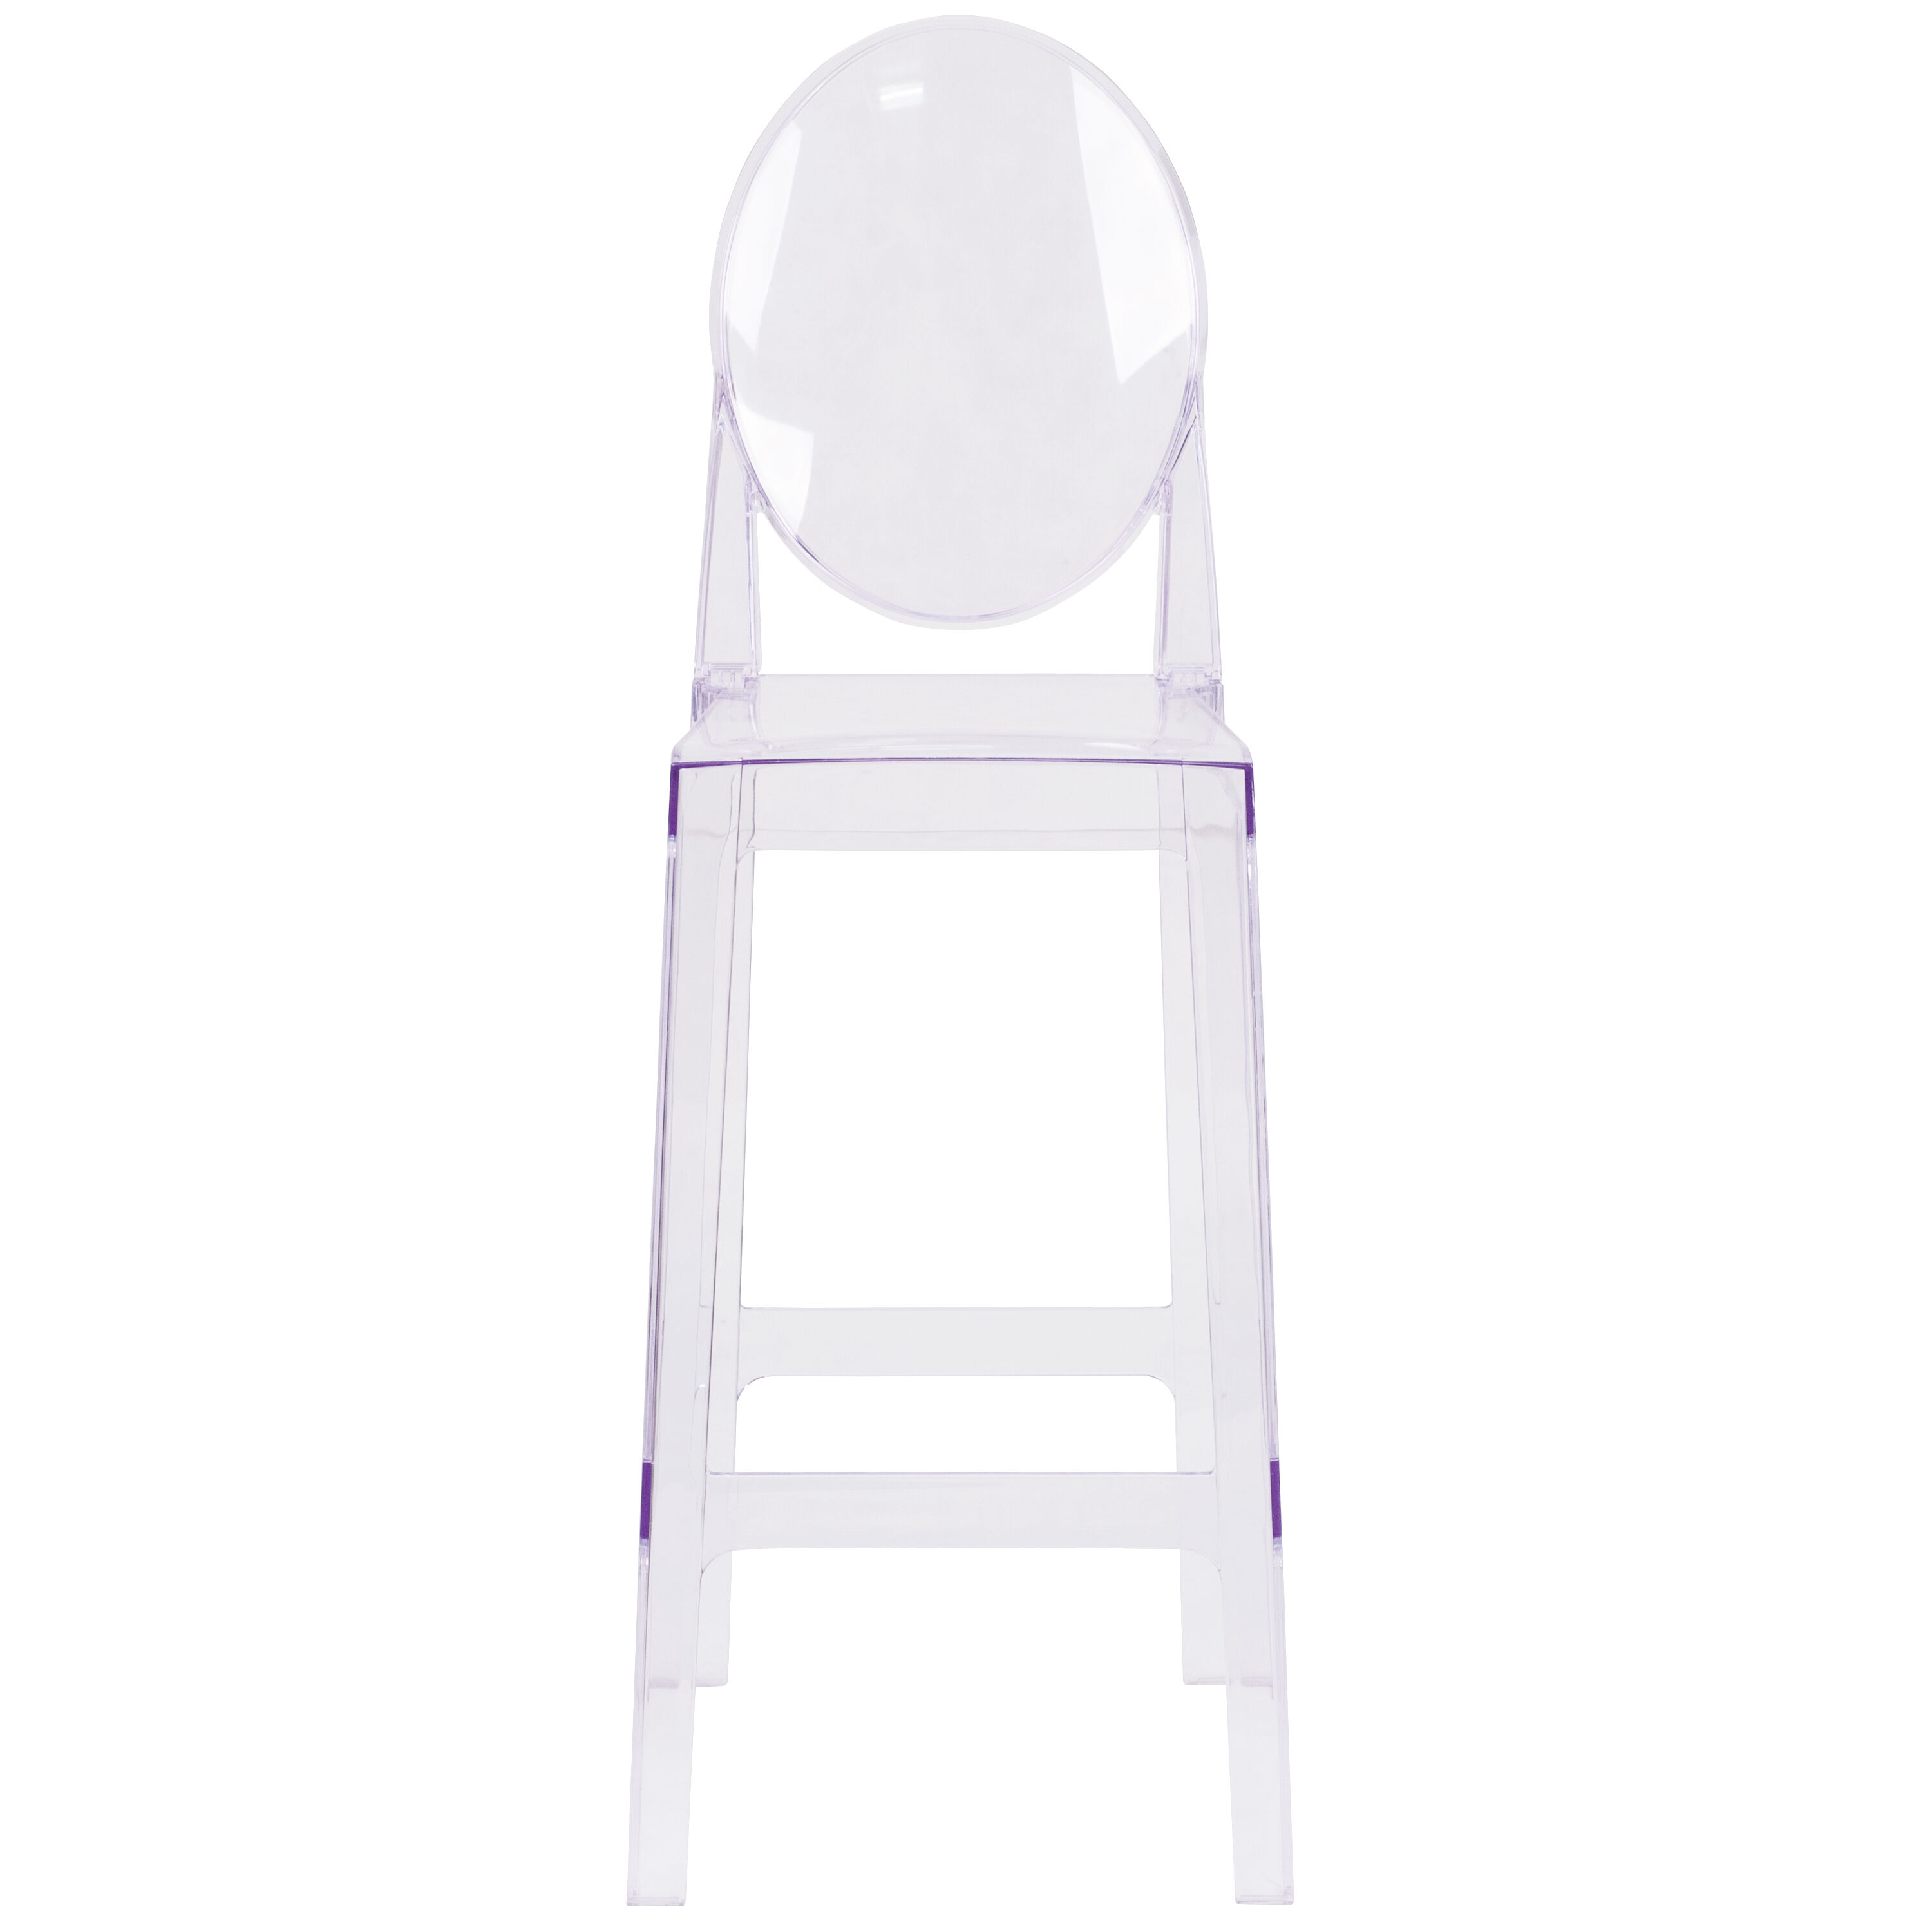 ghost chair bar stool exercises for legs oval back barstool ow ghostback 29 gg bestchiavarichairs com our with in transparent crystal is on sale now